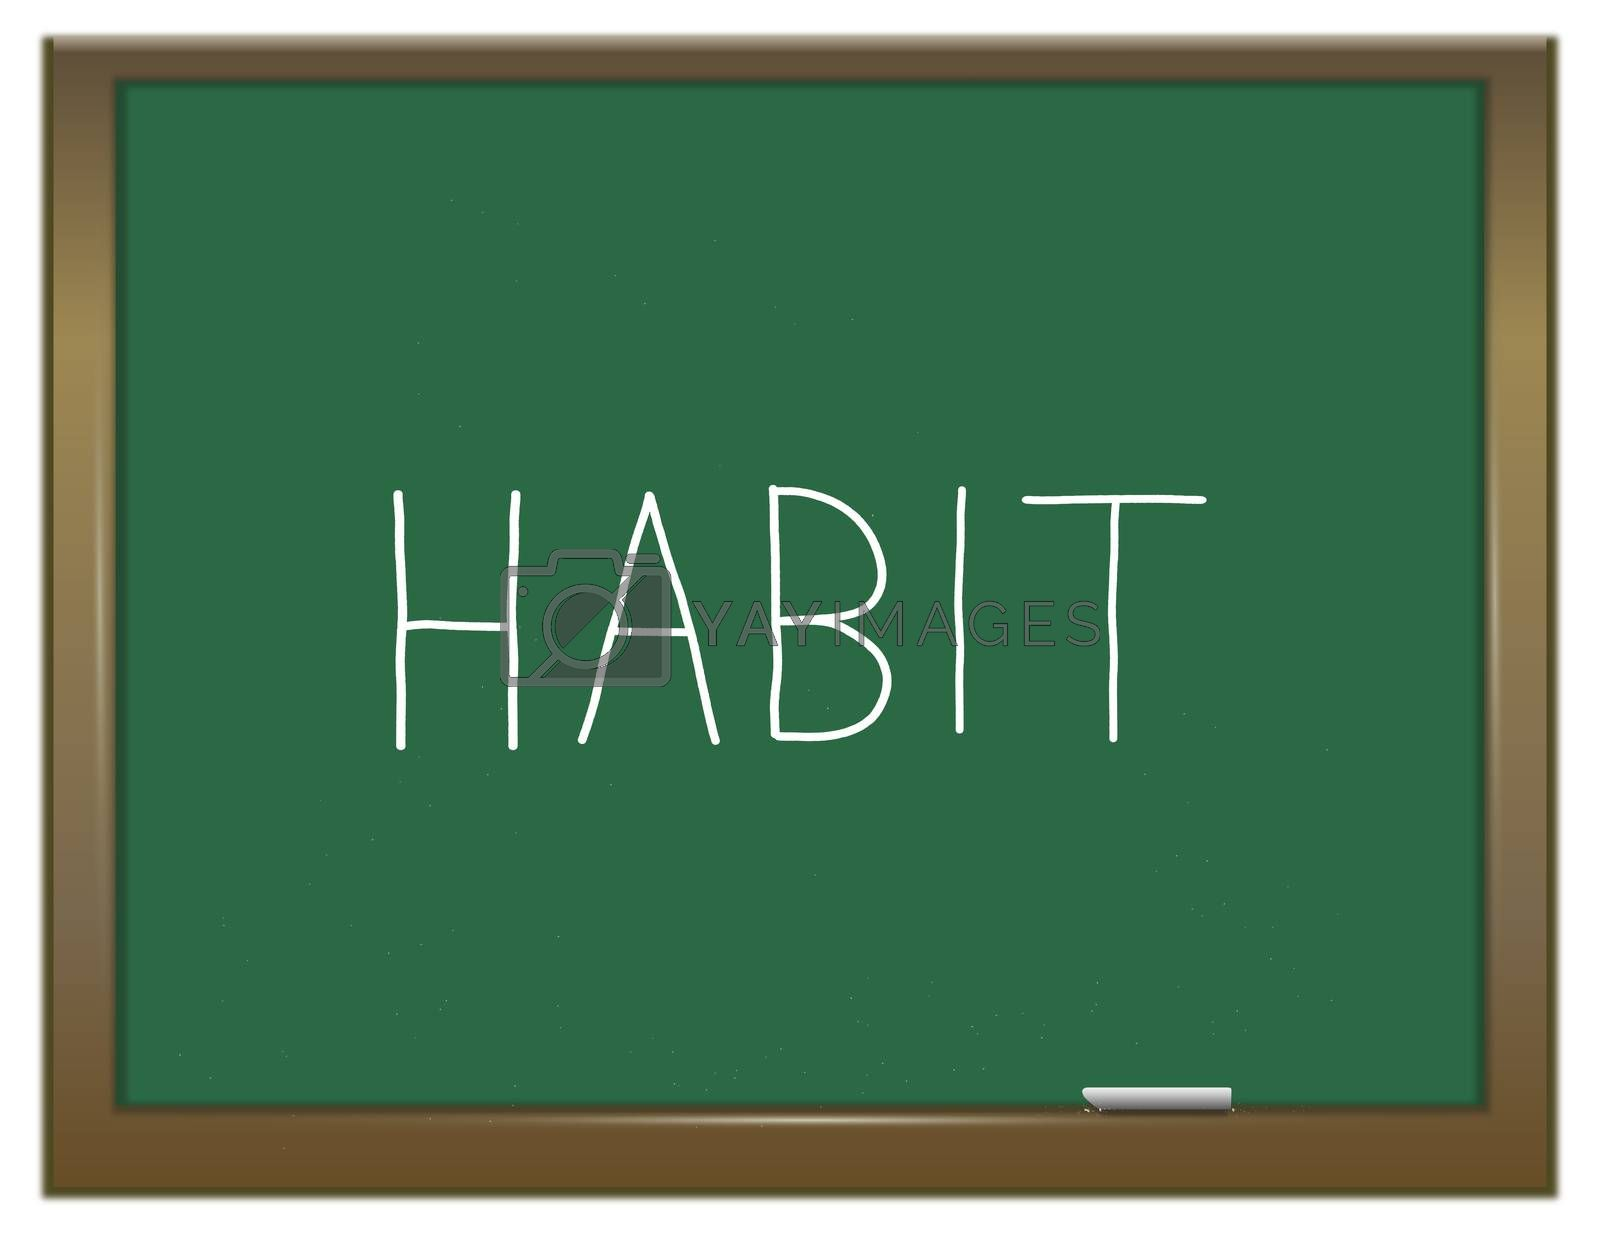 Illustration depicting a green chalkboard with a habit concept.